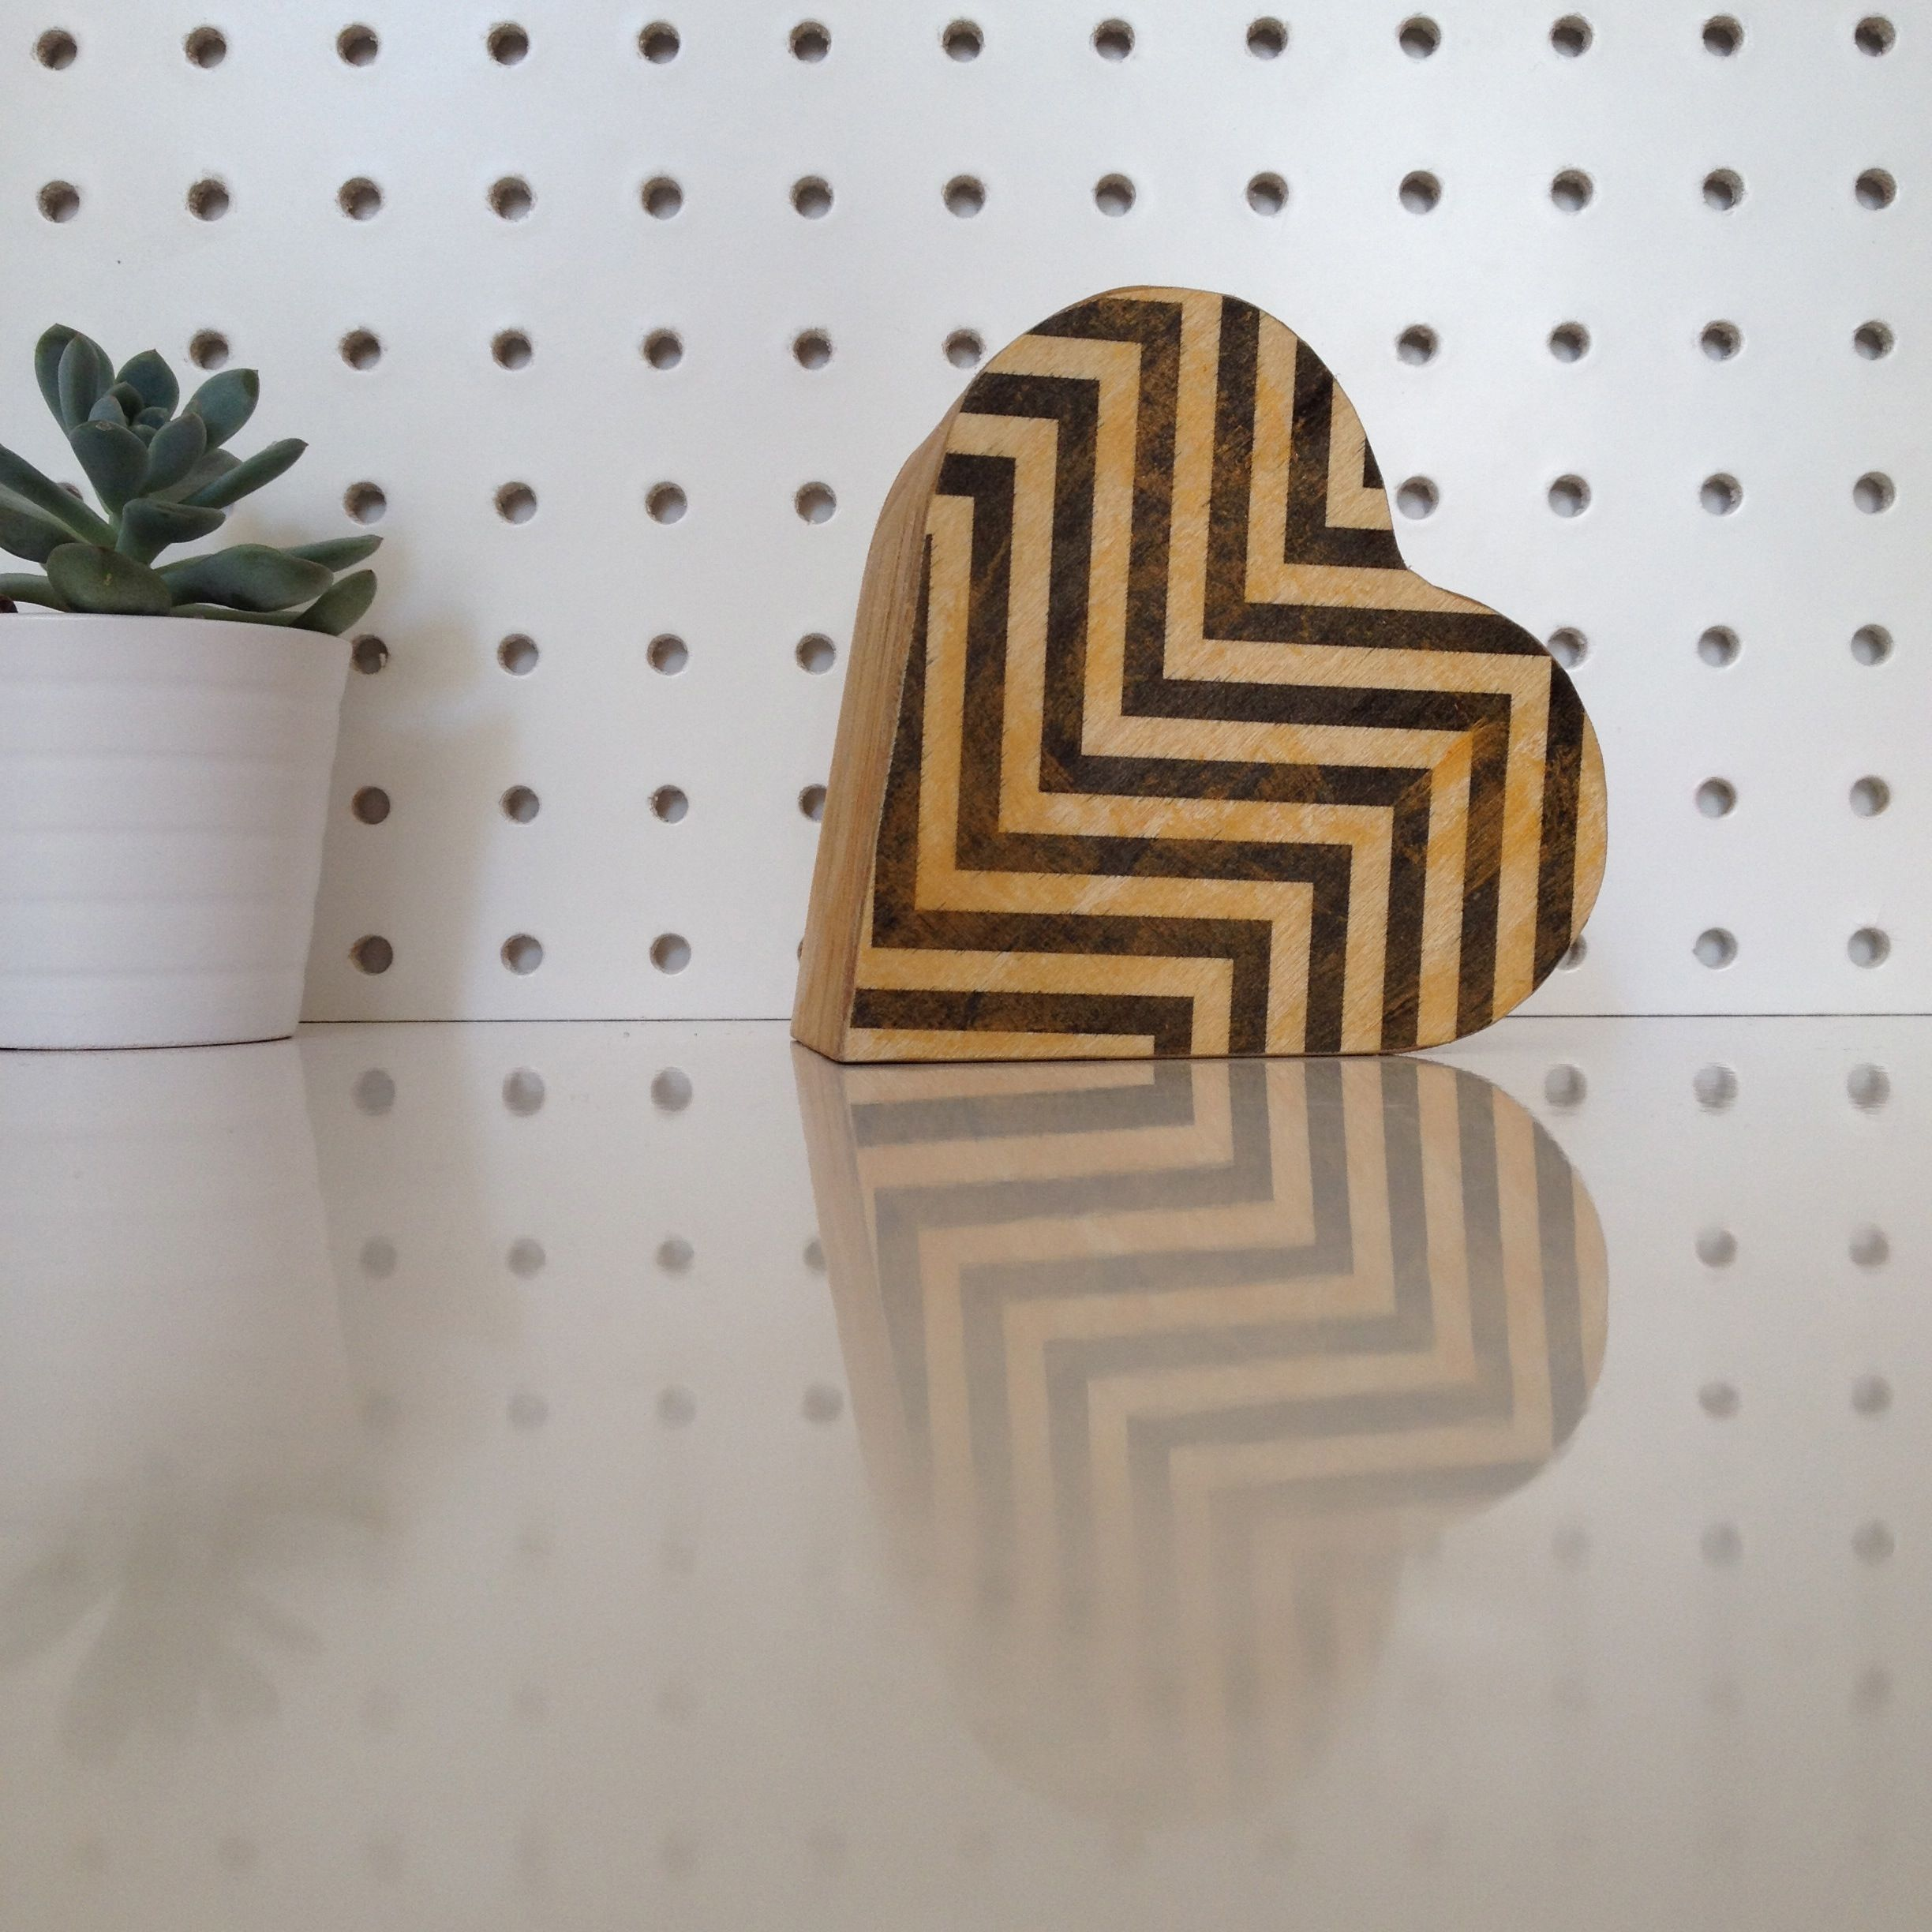 A Cute Heart Shaped Wooden Trinket Box With A Chevron